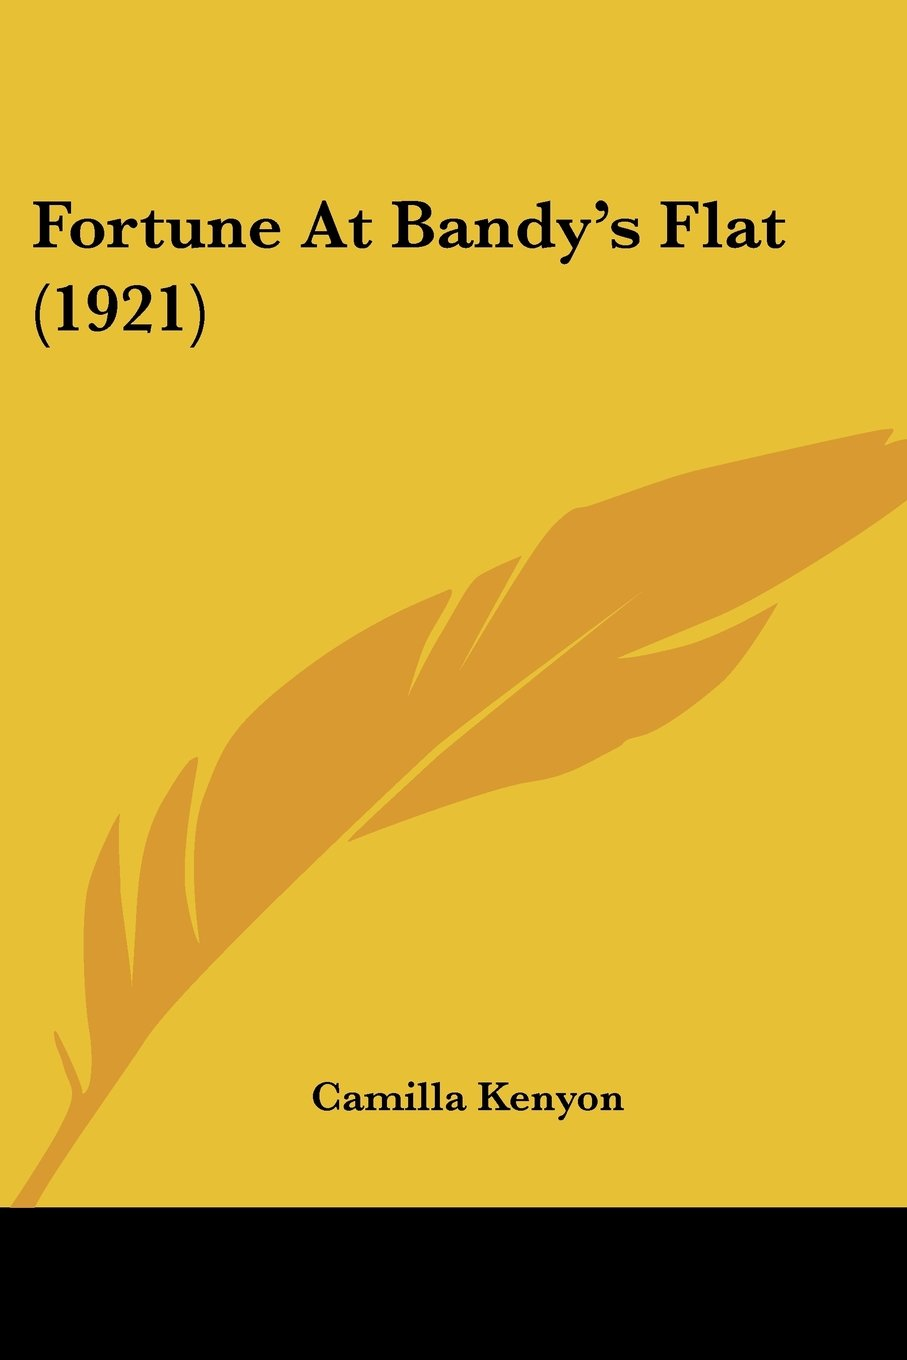 Fortune At Bandy's Flat (1921) pdf